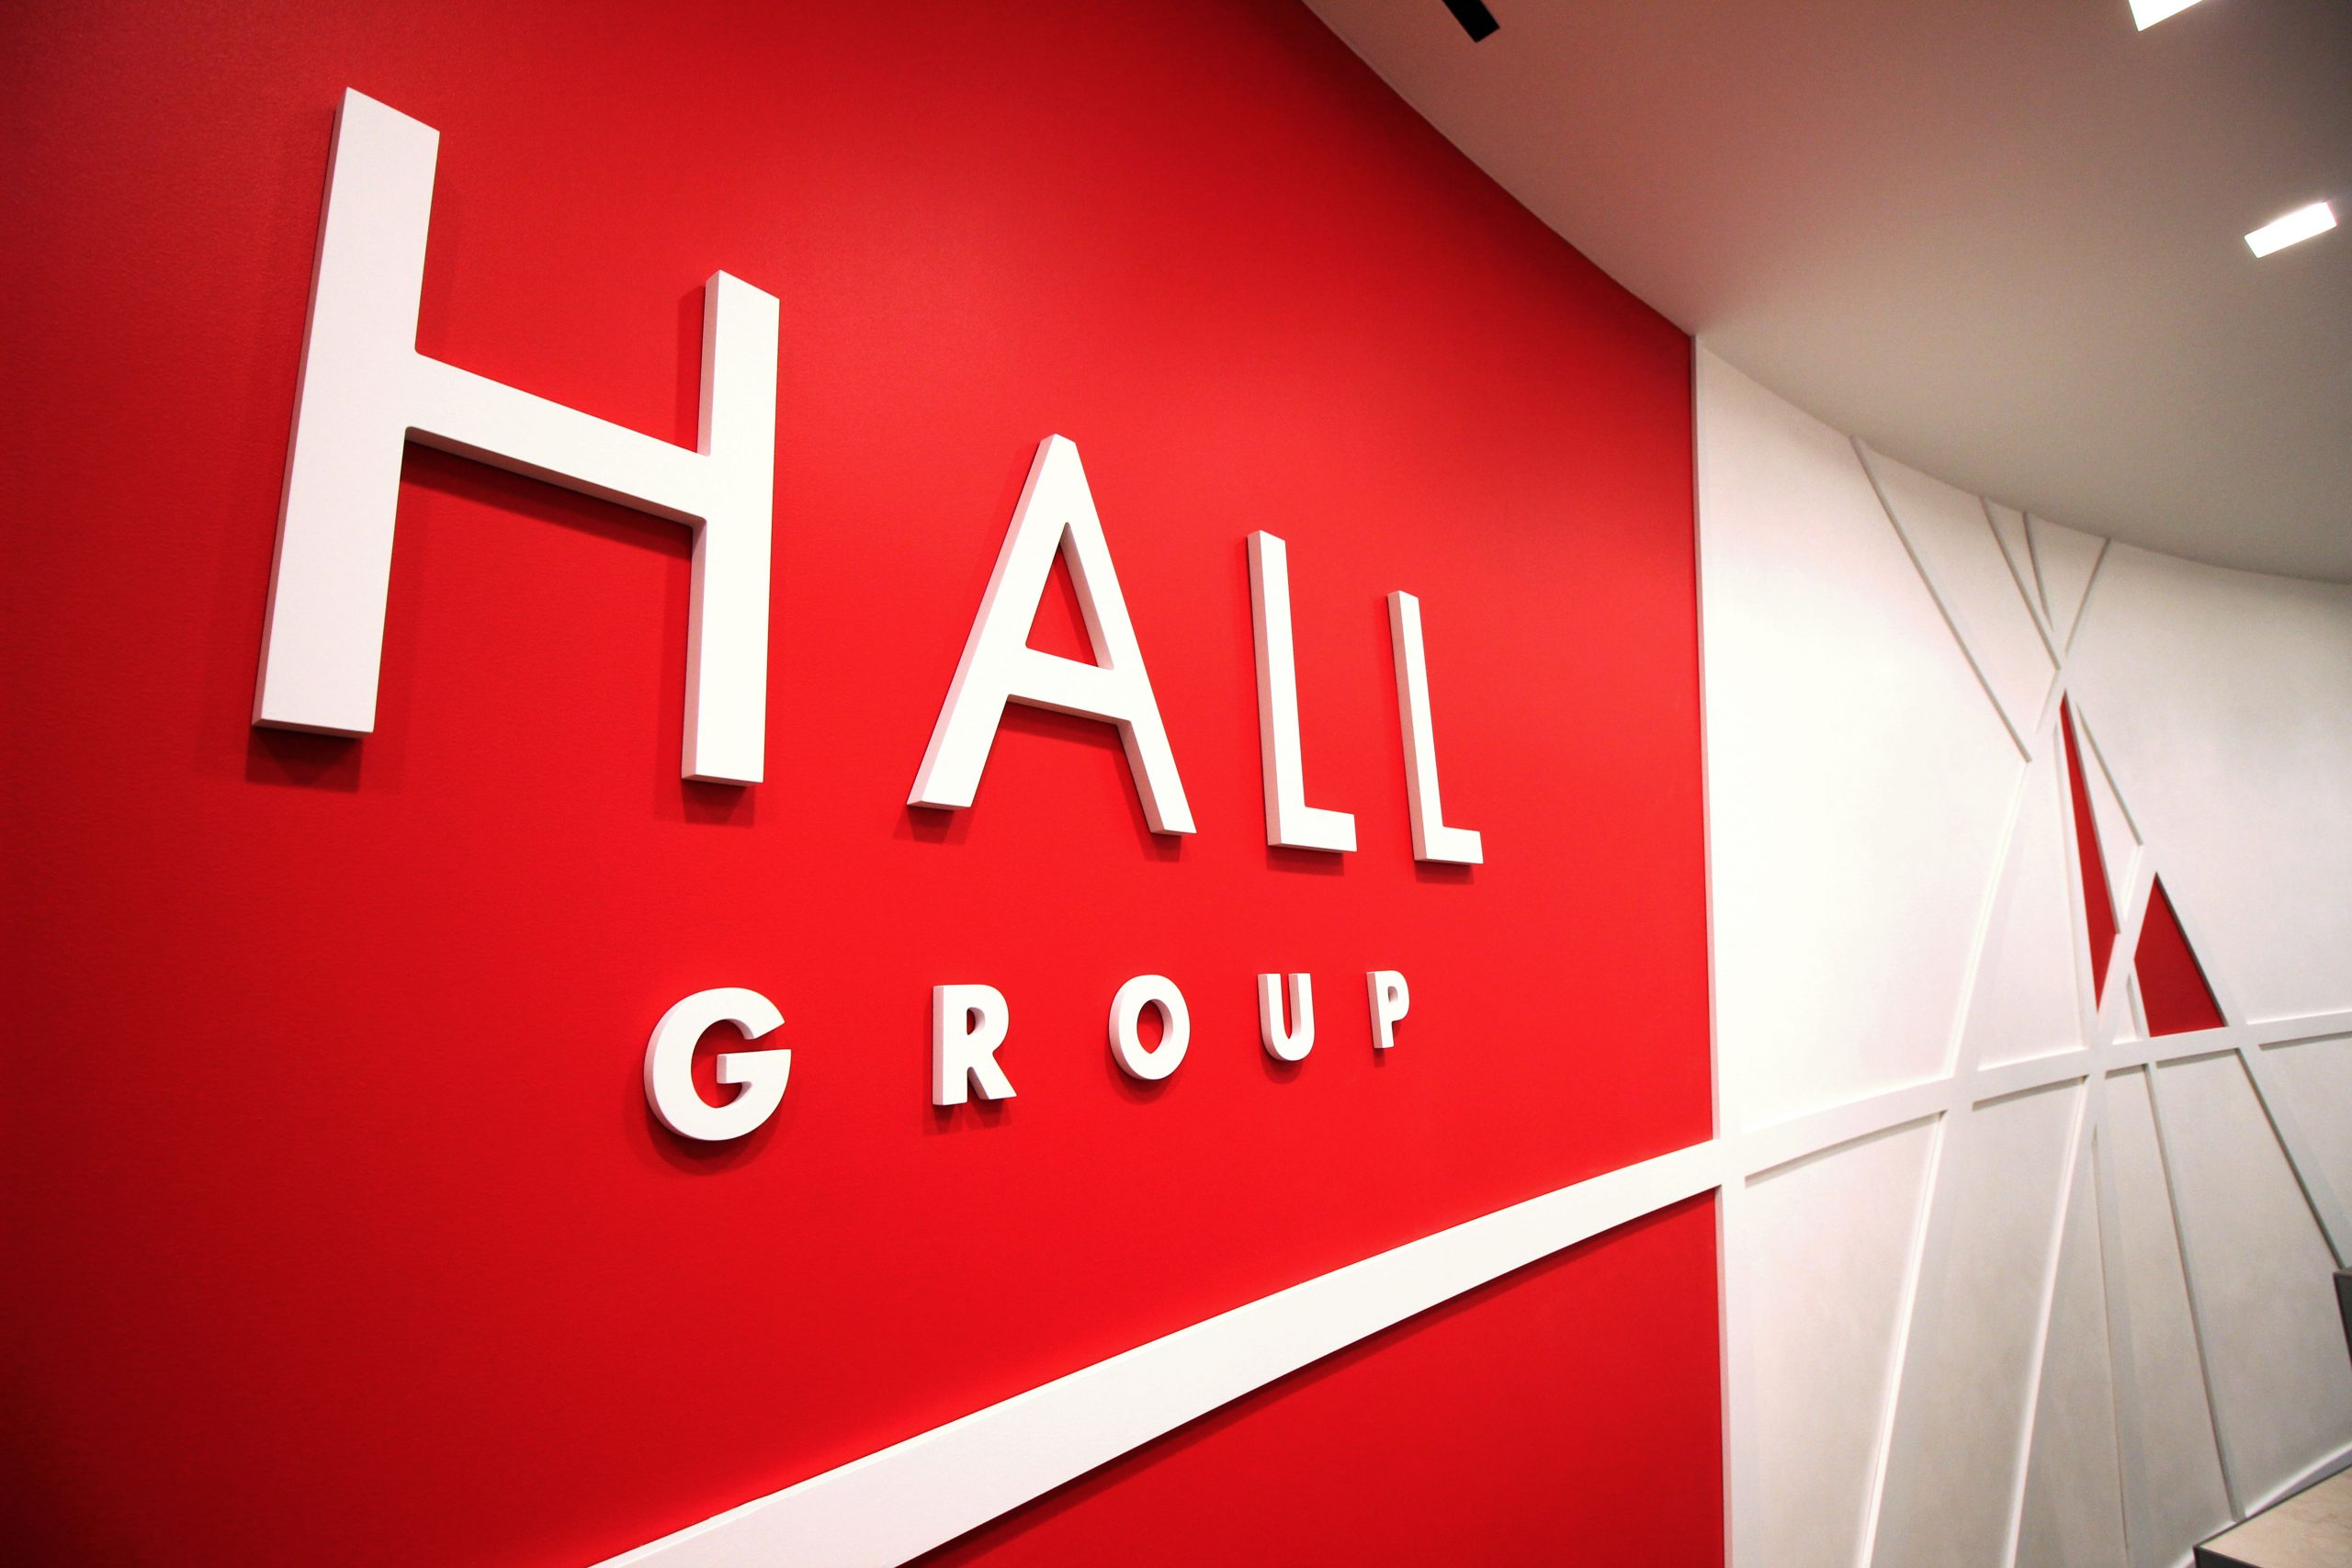 The Hall Group Experience